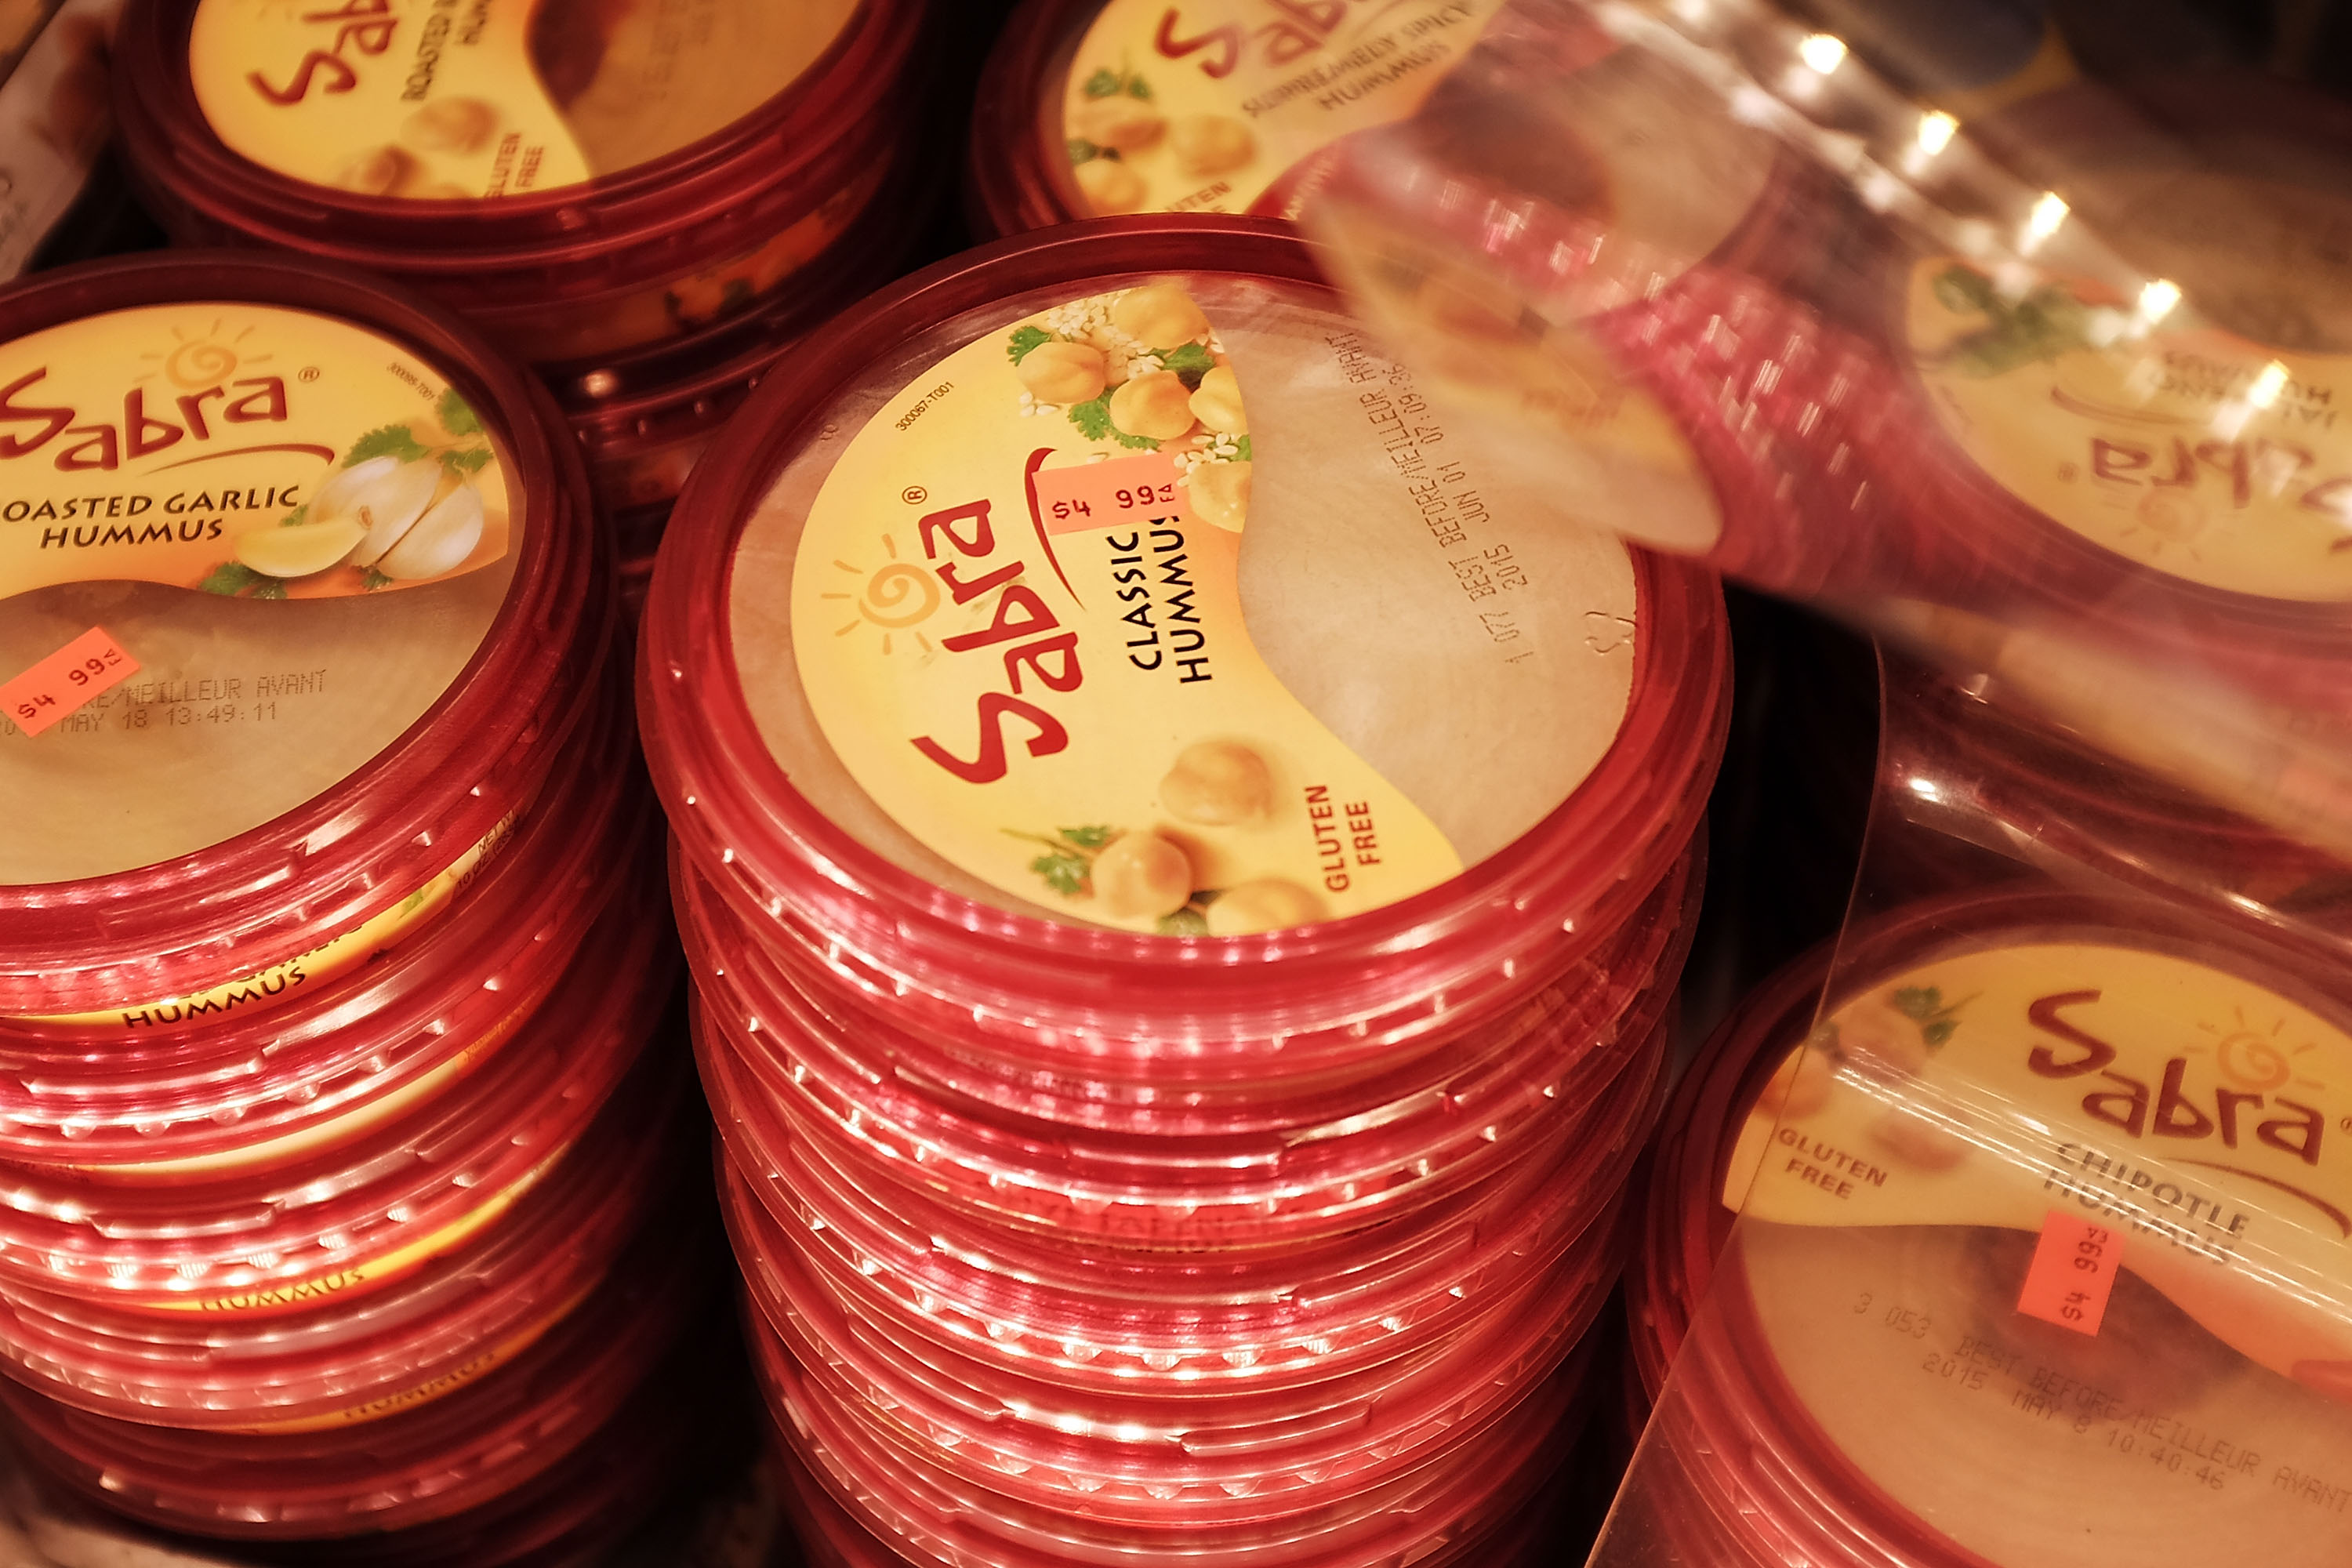 Oh no, Sabra just recalled a bunch of hummus so check your fridge